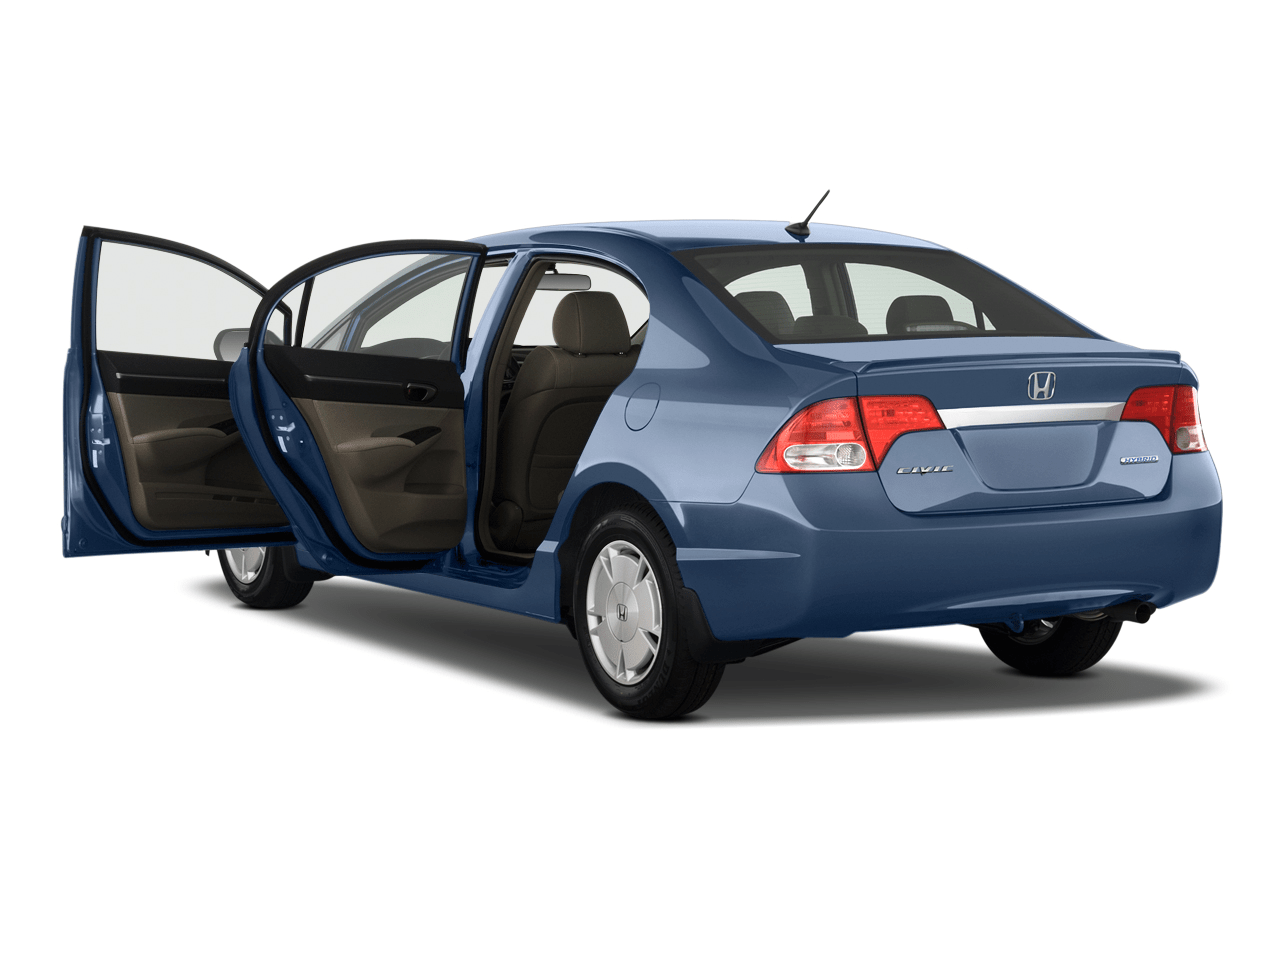 2010 Honda Civic 4 Door Hybrid